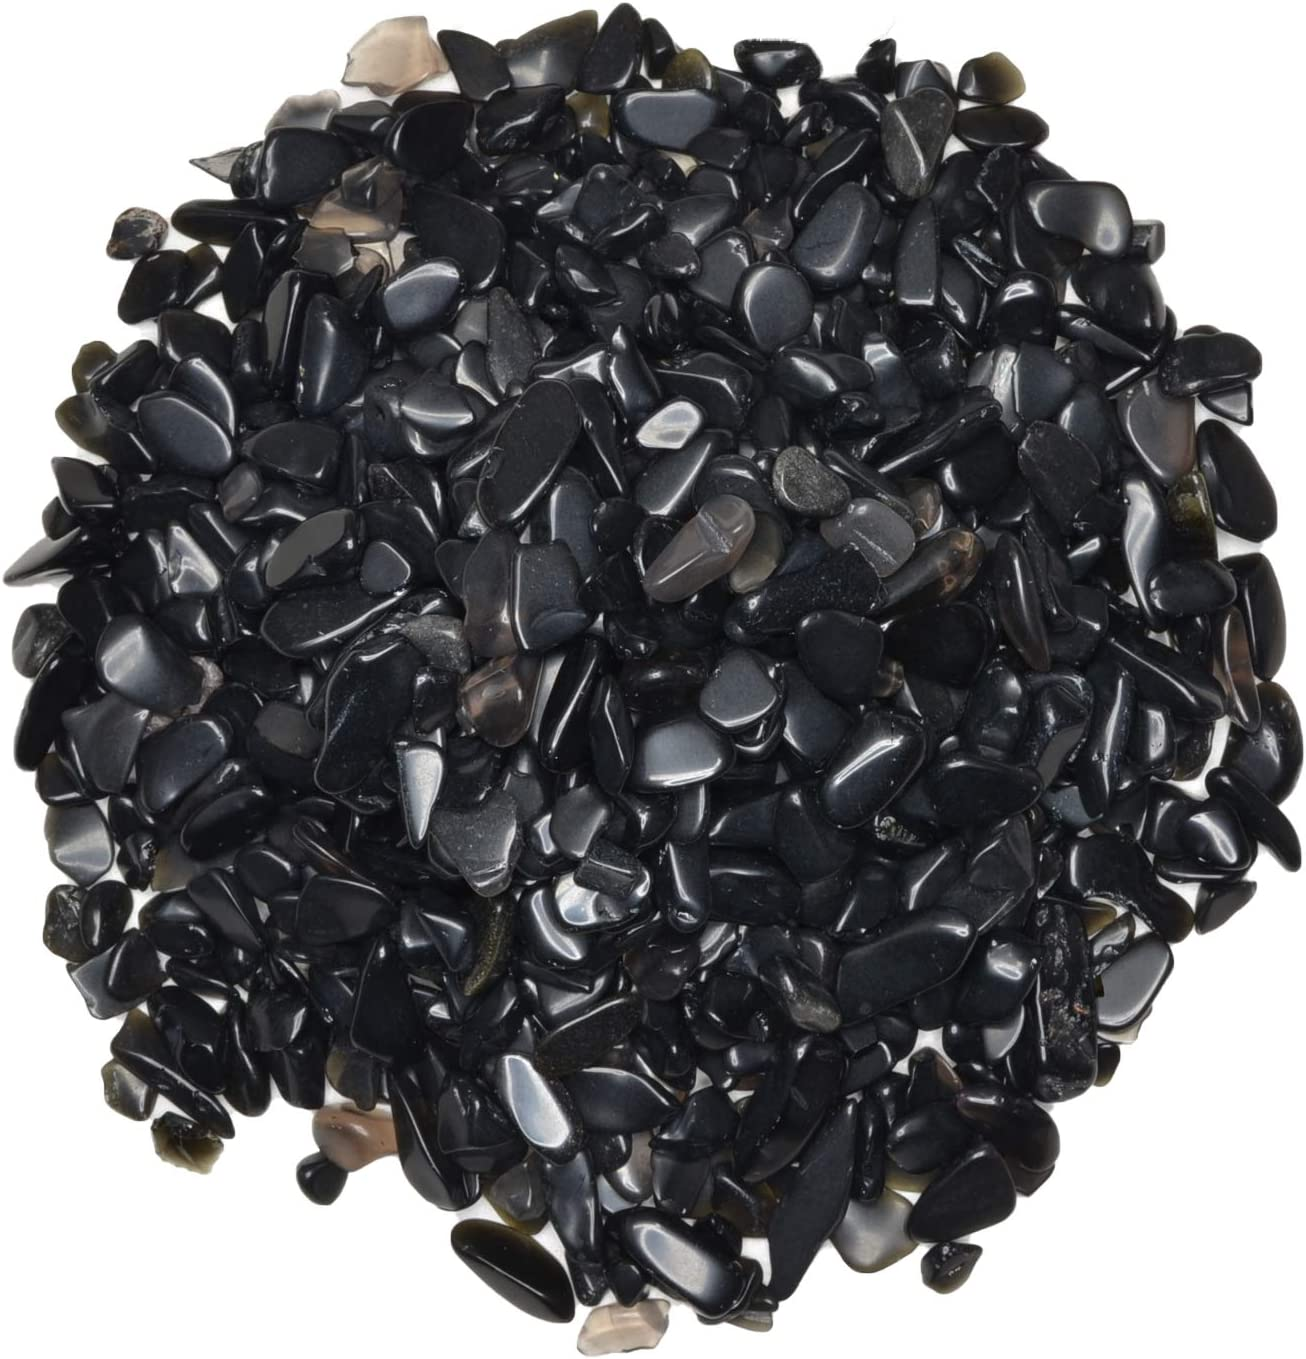 Hypnotic overseas Gems: 5 lbs of Polished Rock Obsidian Chi Natural Popular Black